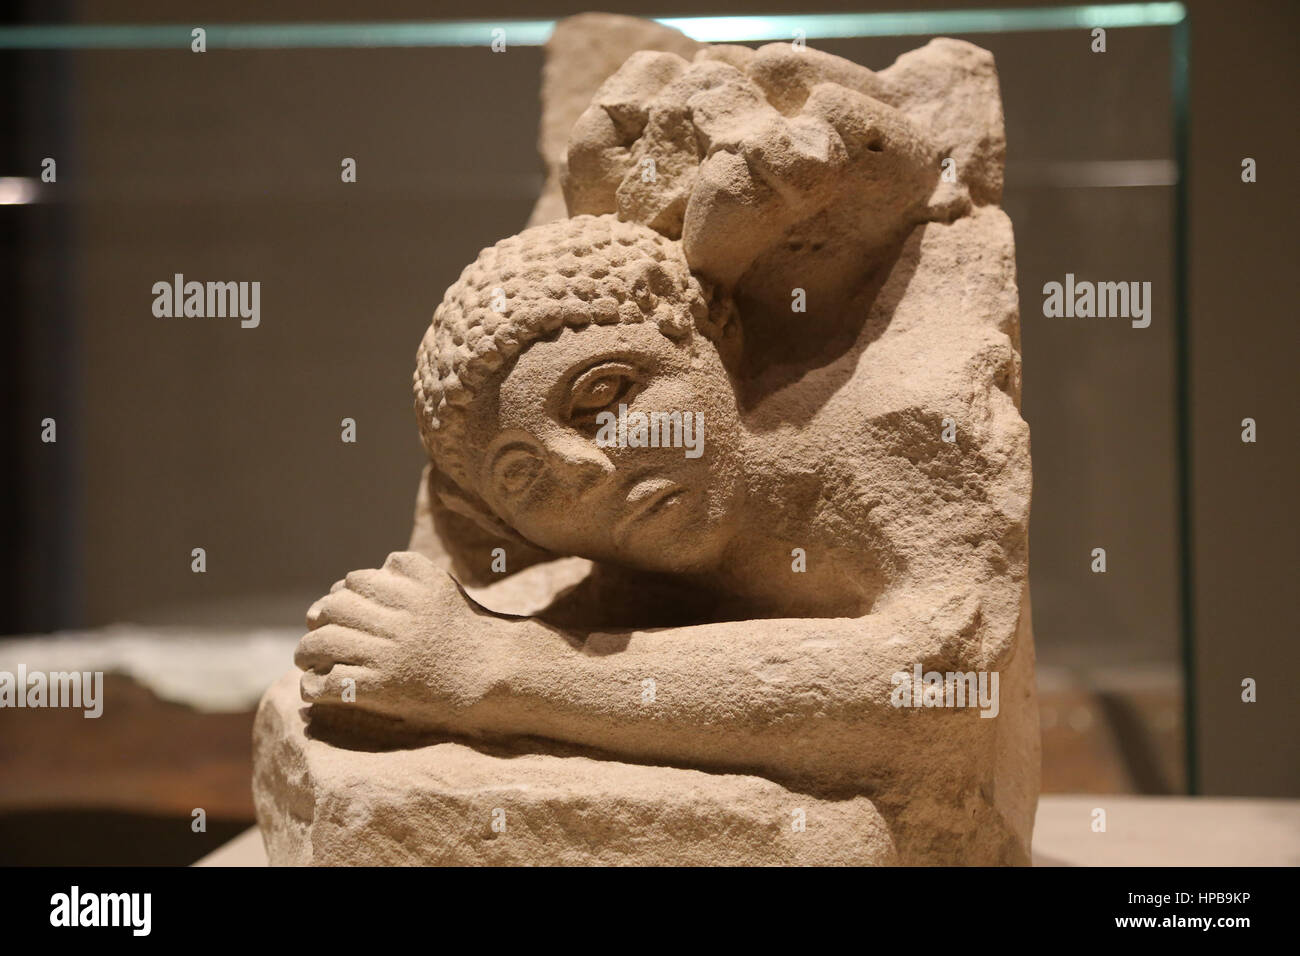 Iberian ashlars. Osuna group B. Man attacked by a lion. Limestone. Early 1st century BC. Osuna (Seville). Spain. - Stock Image